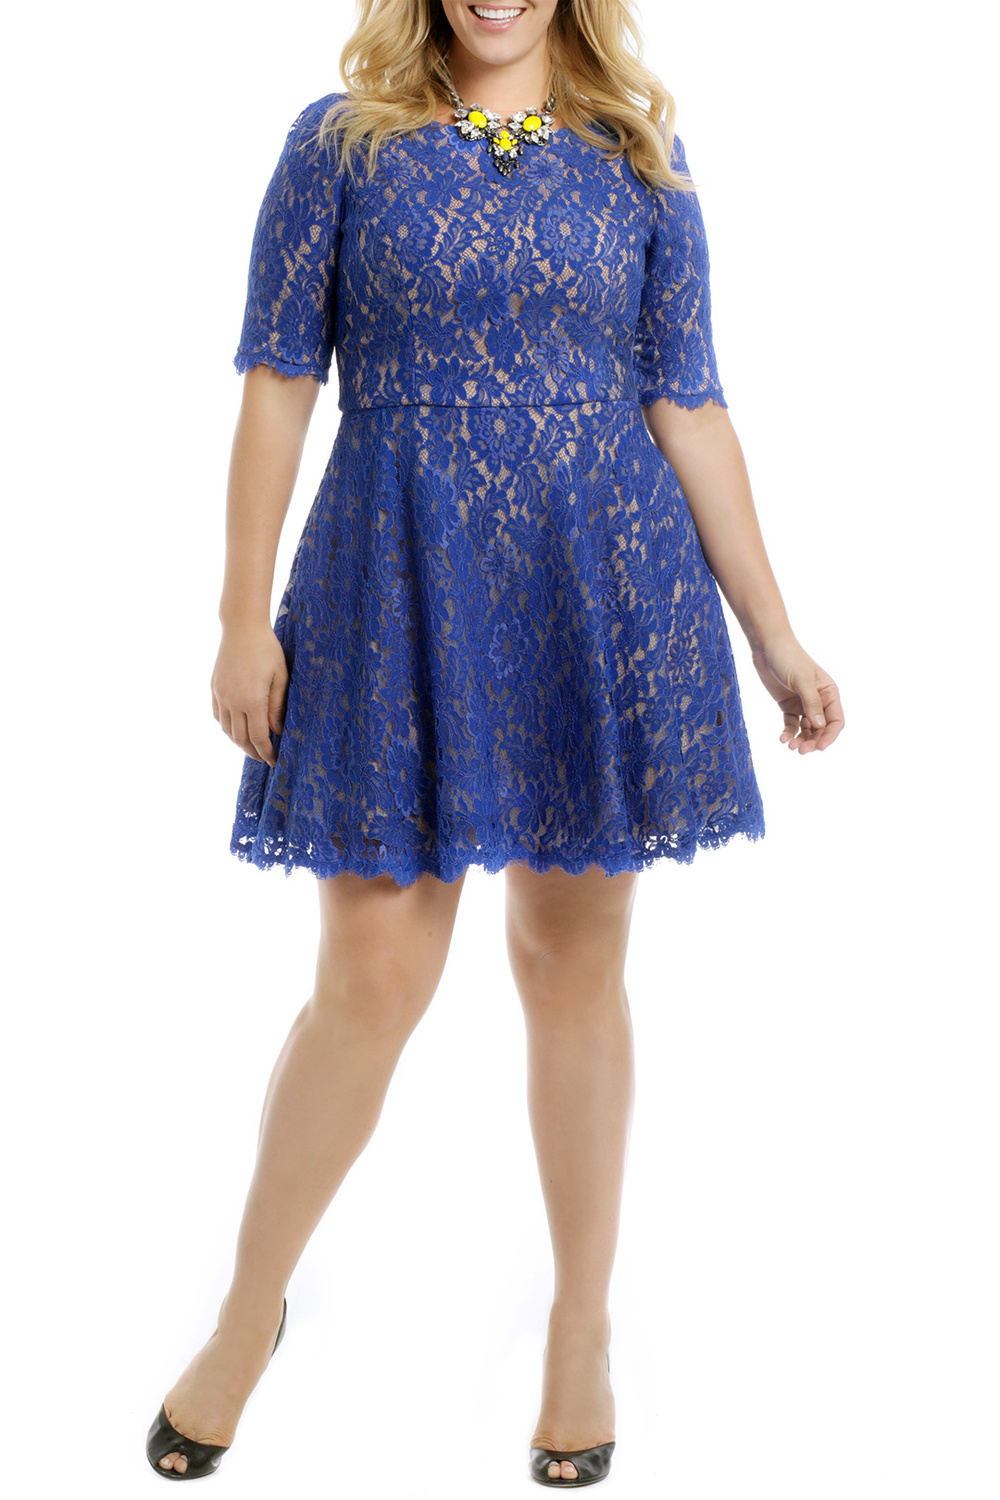 Alice Dress, ML by Monique Lhuillier, $40 for a 4-day rental at Rent the Runway